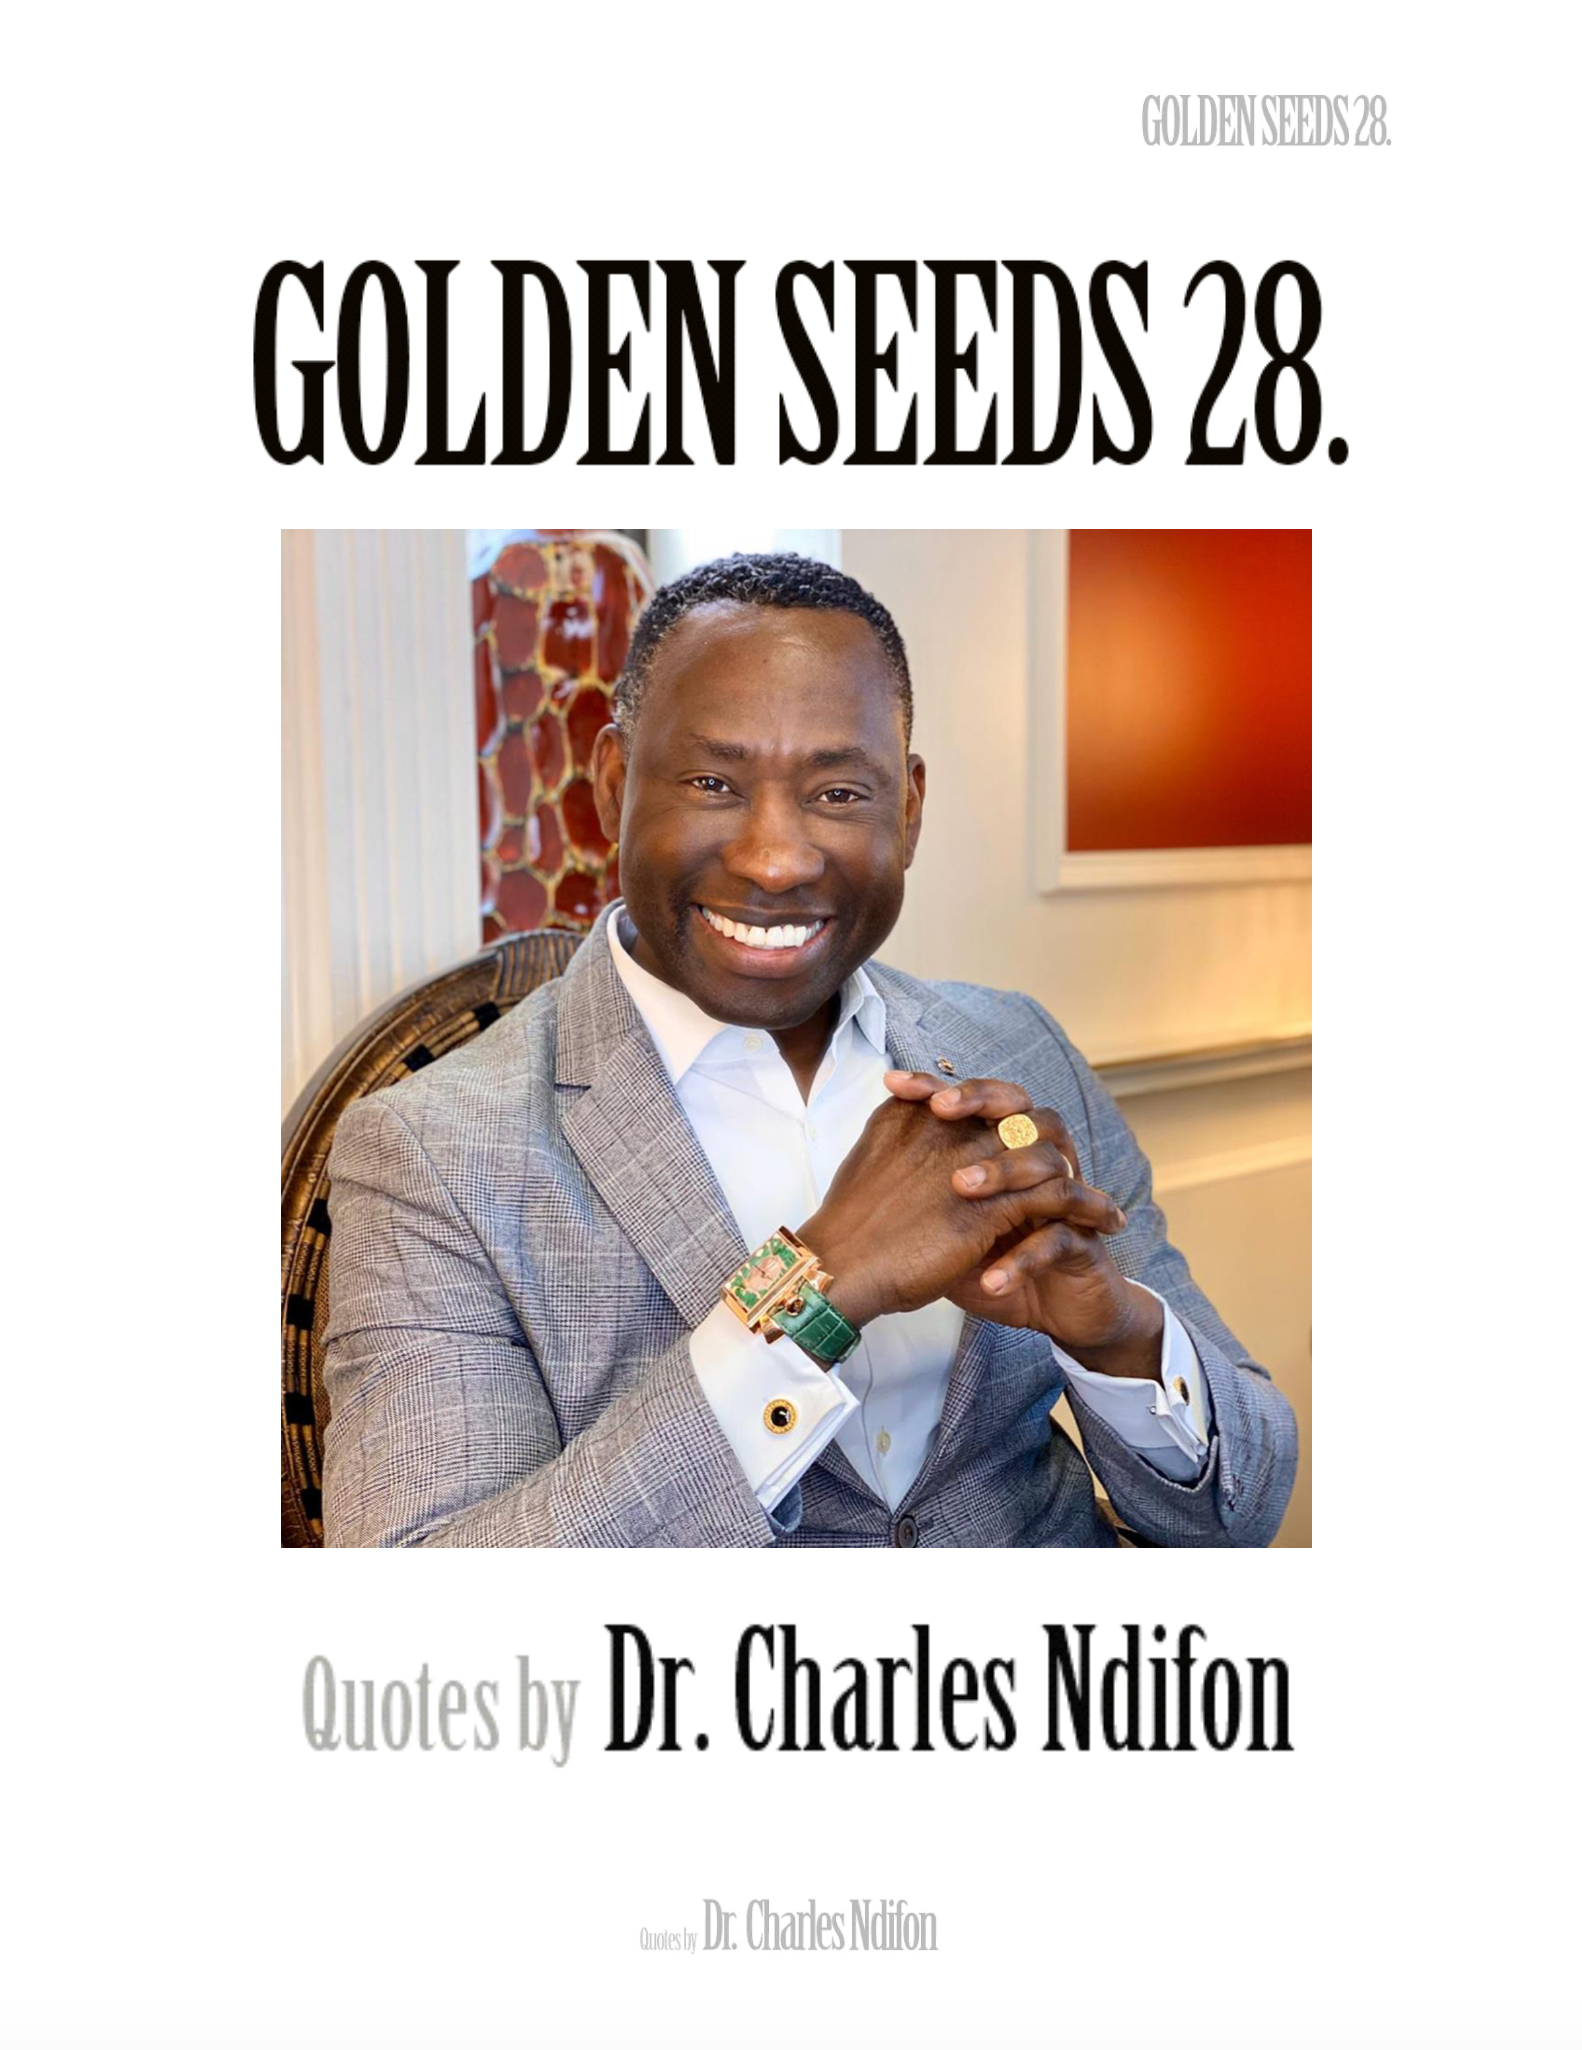 Golden Seeds 28